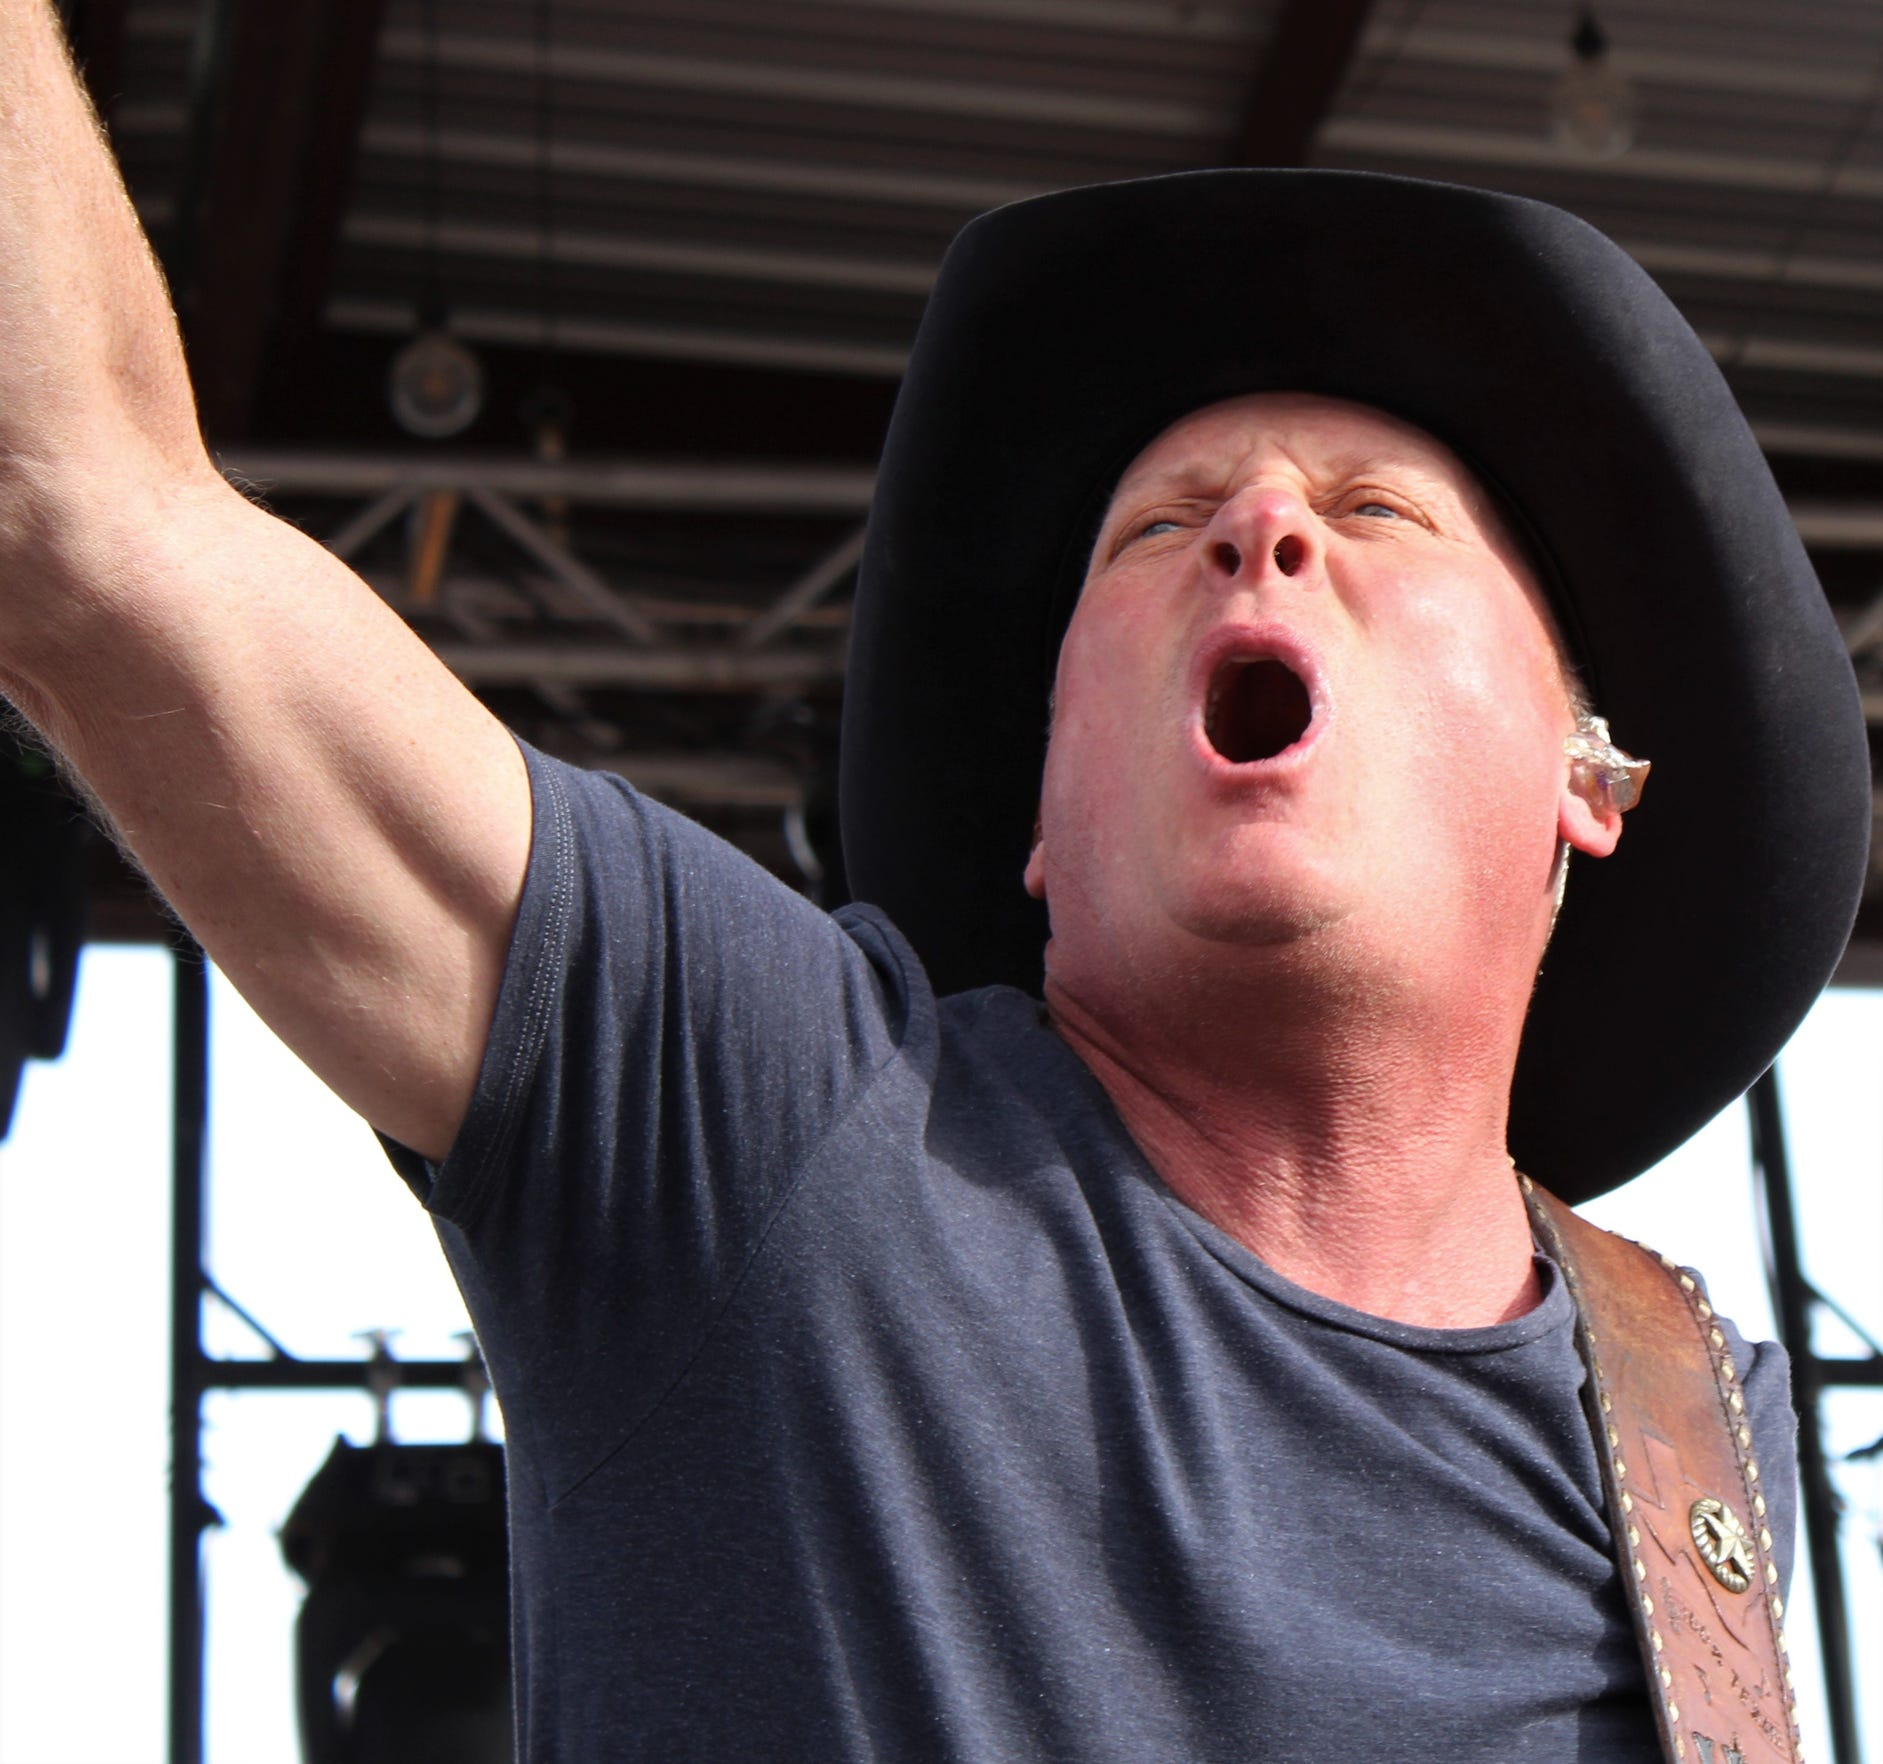 Kevin Fowler stirs up the crowd during his 2019 Outlaws show.